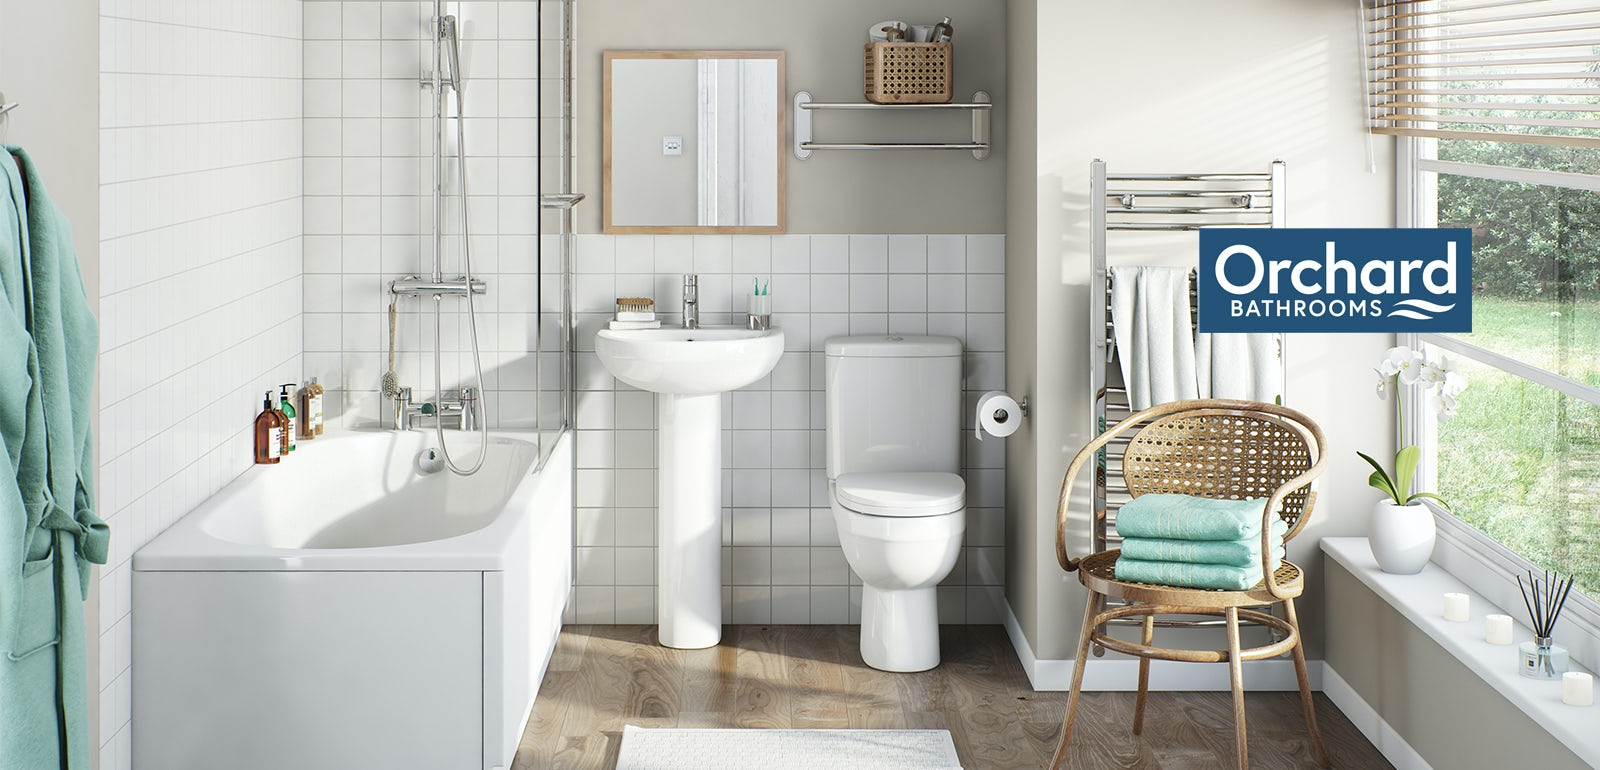 Refit bathroom cost - Eden Bathroom Suite